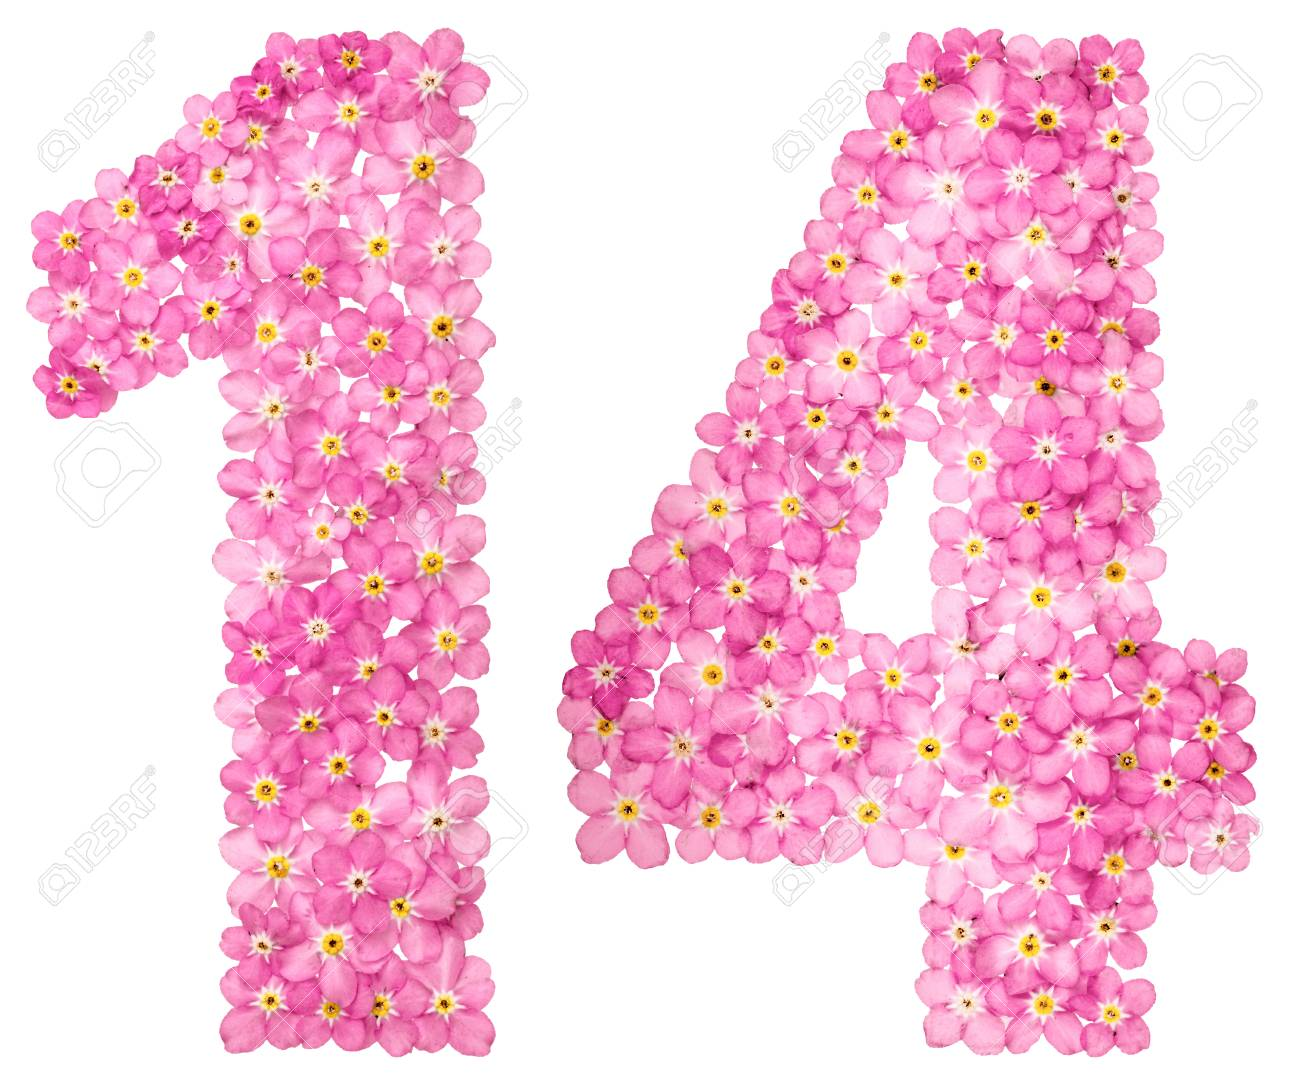 Arabic Numeral 14 Fourteen From Pink Forget Me Not Flowers